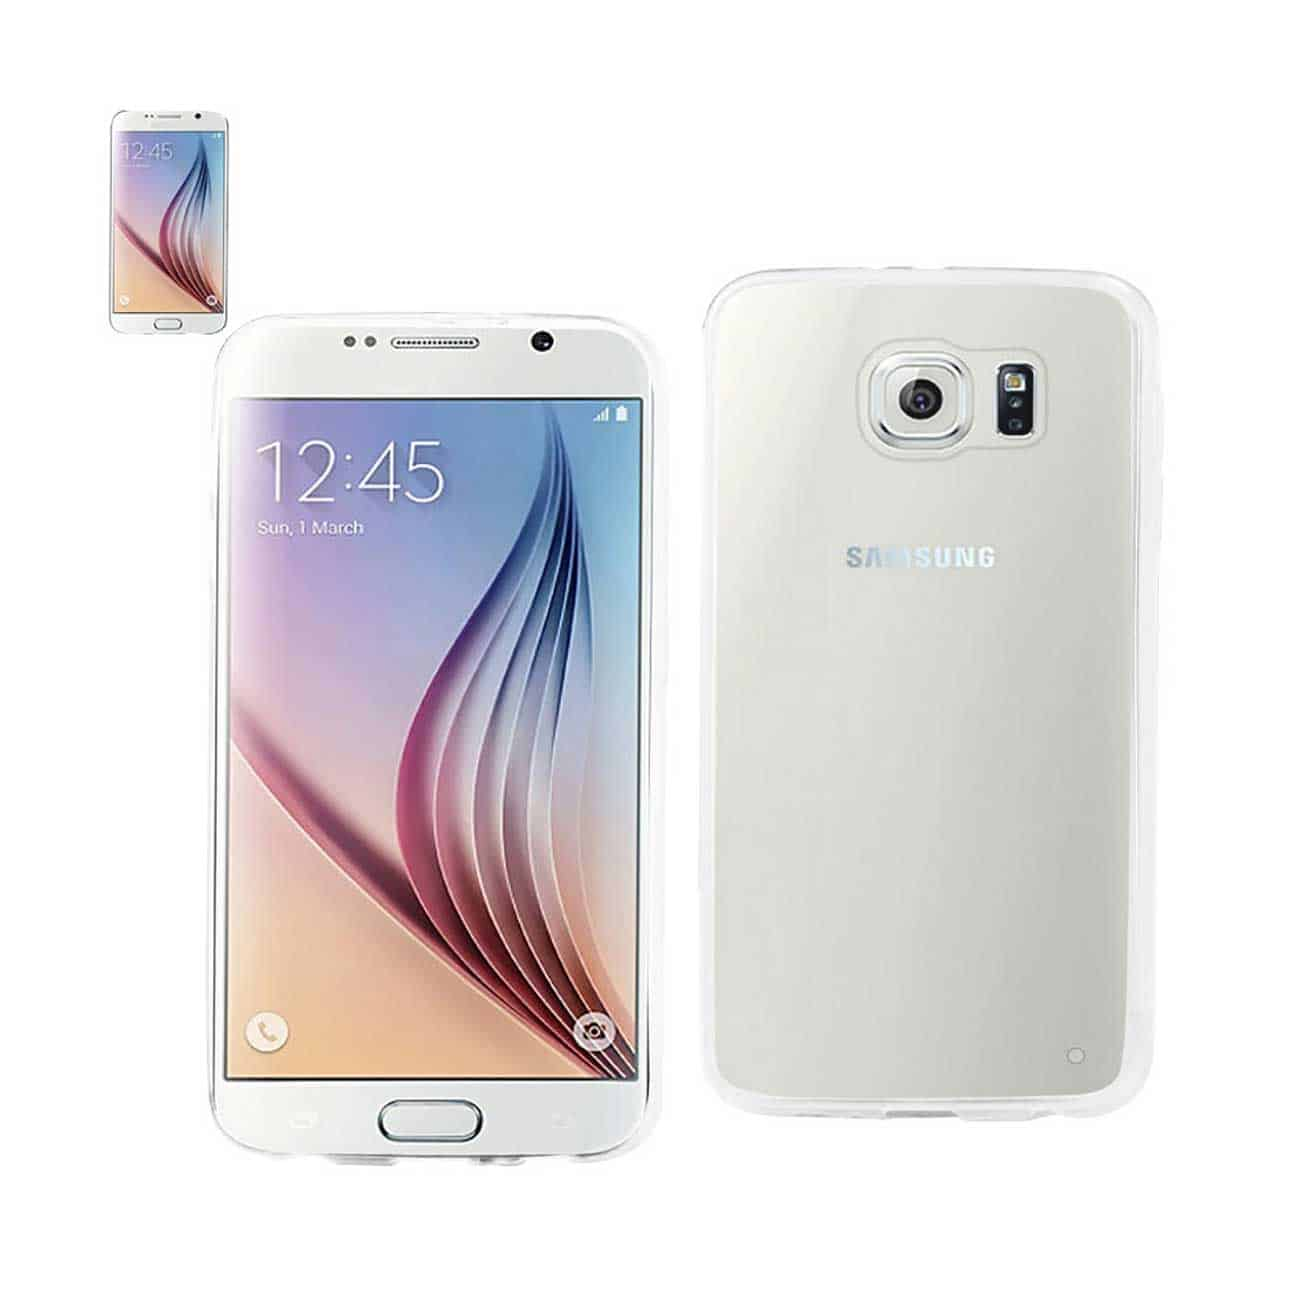 SAMSUNG GALAXY S6 CLEAR BACK FRAME BUMPER CASE IN CLEAR